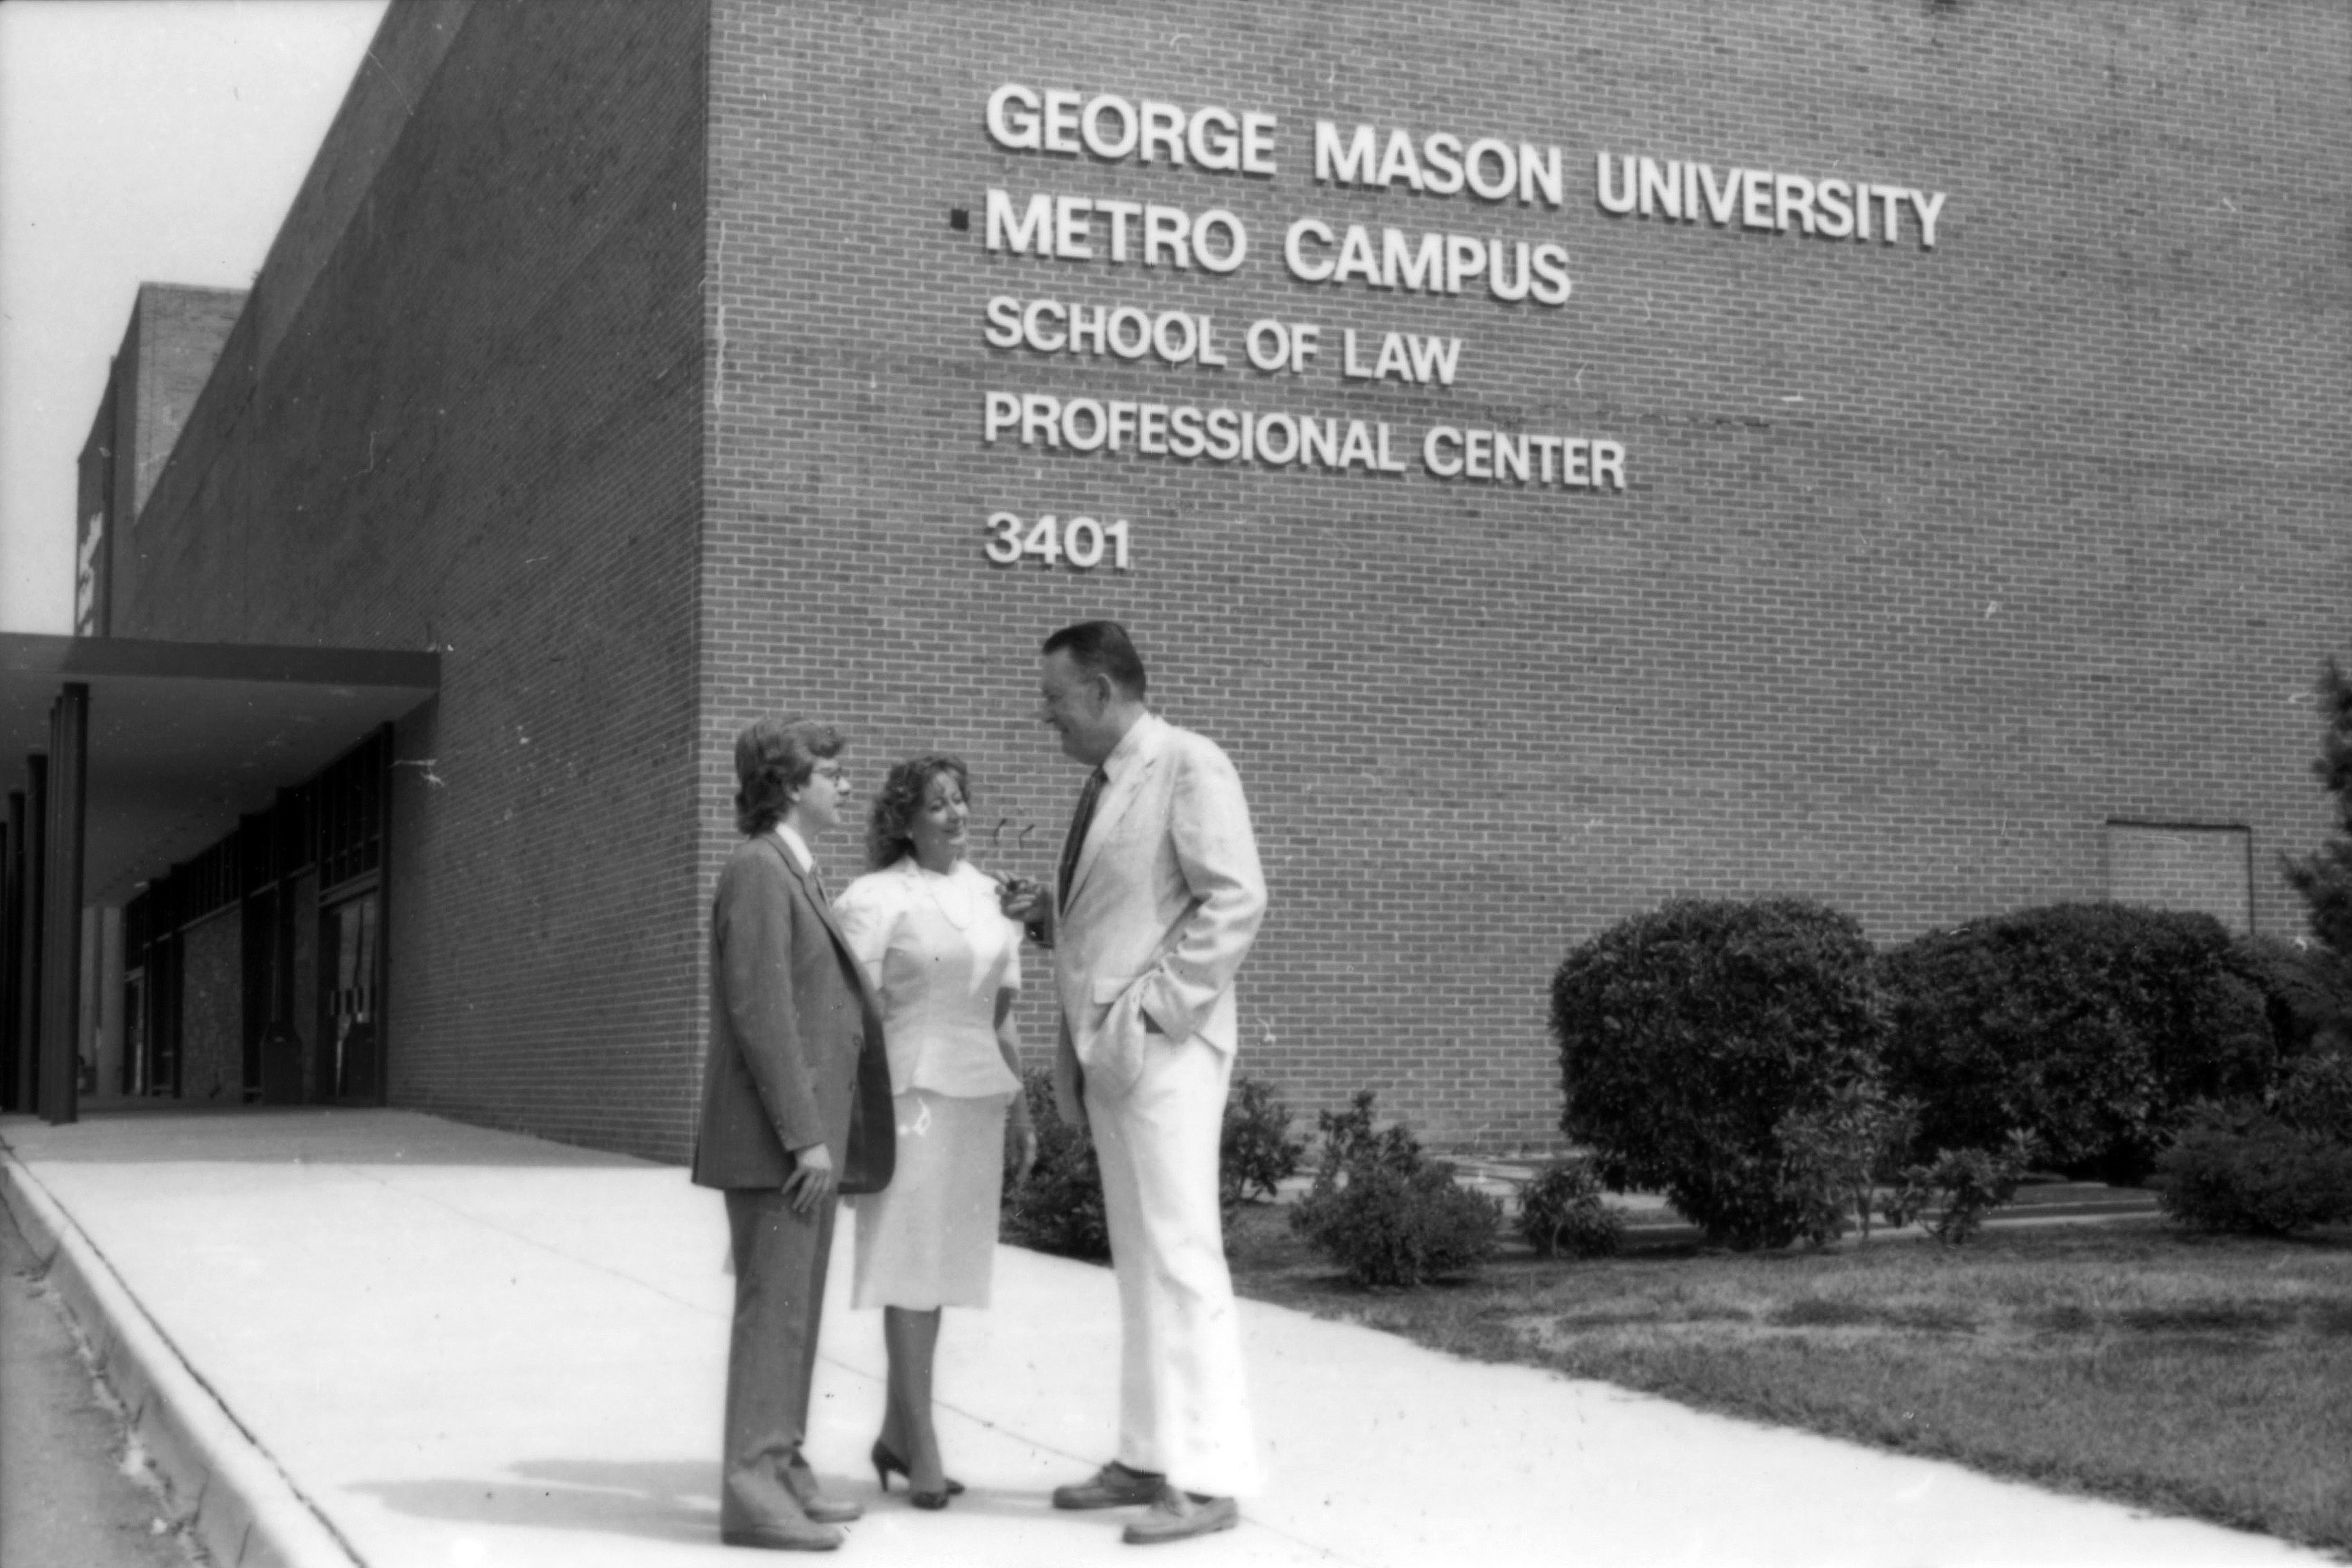 """John T. """"Til"""" Hazel and students in front of the George Mason University School of Law, July 31, 1987"""